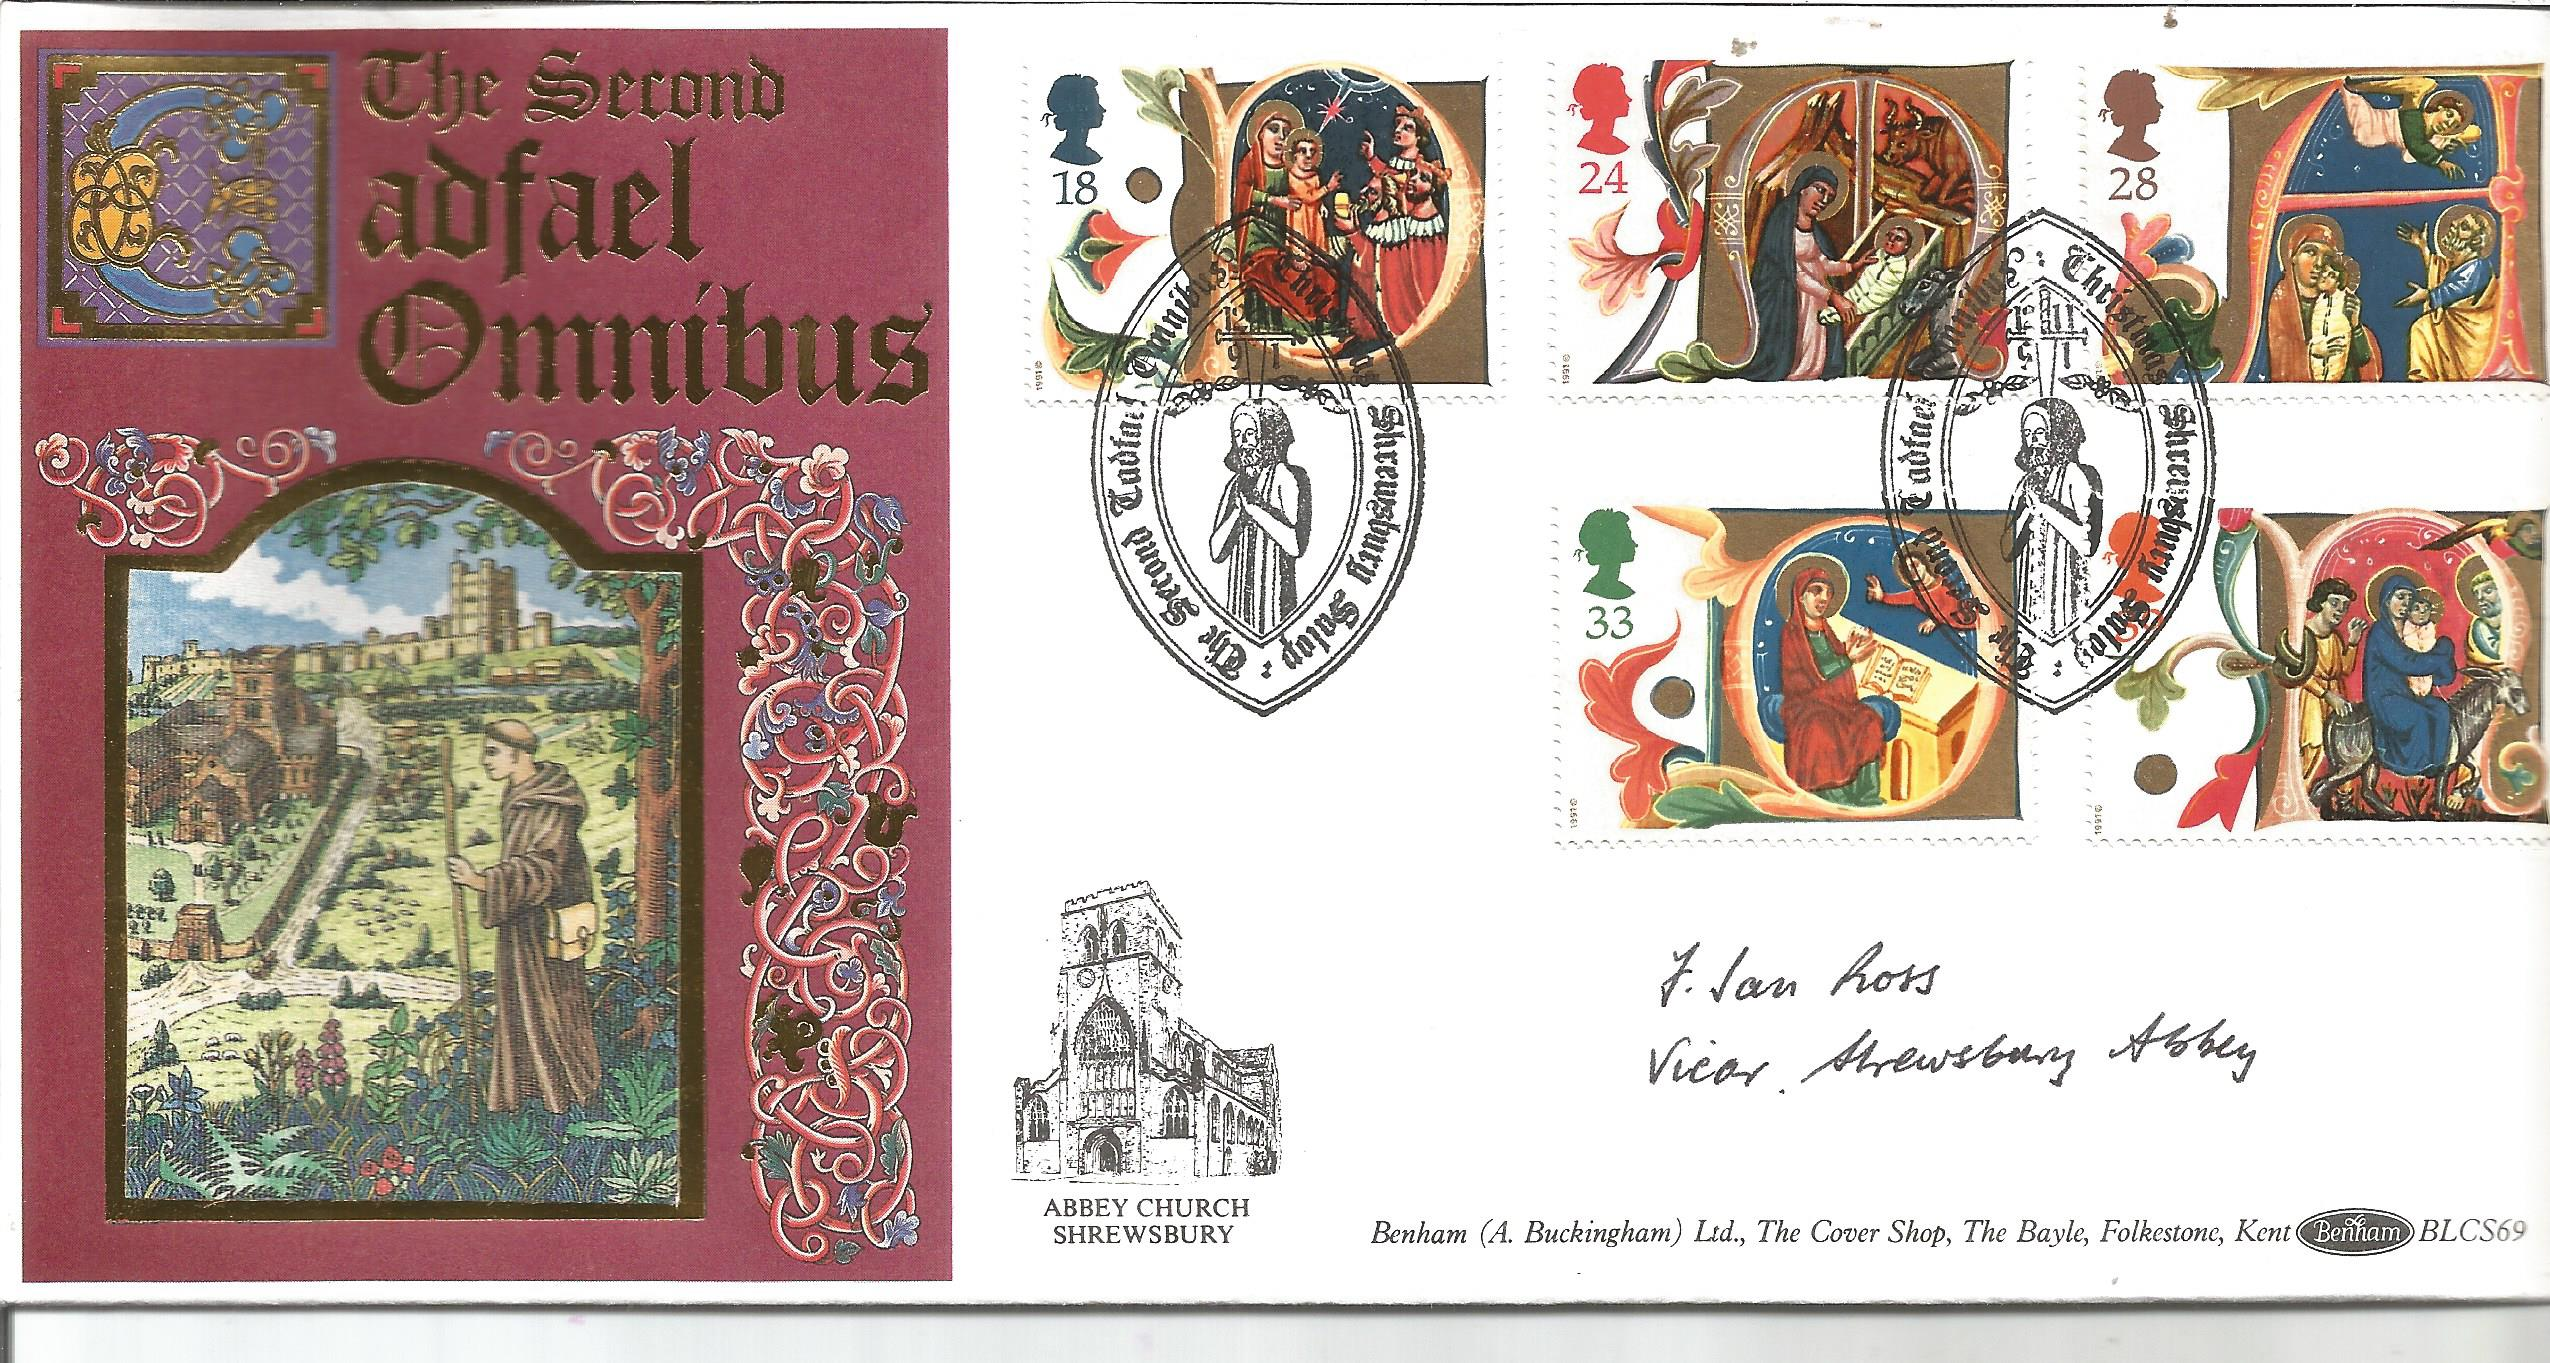 J Ian Ross Vicar Shrewsbury Abbey signed Benham official 1991 Christmas LCS69 FDC to commemorate the